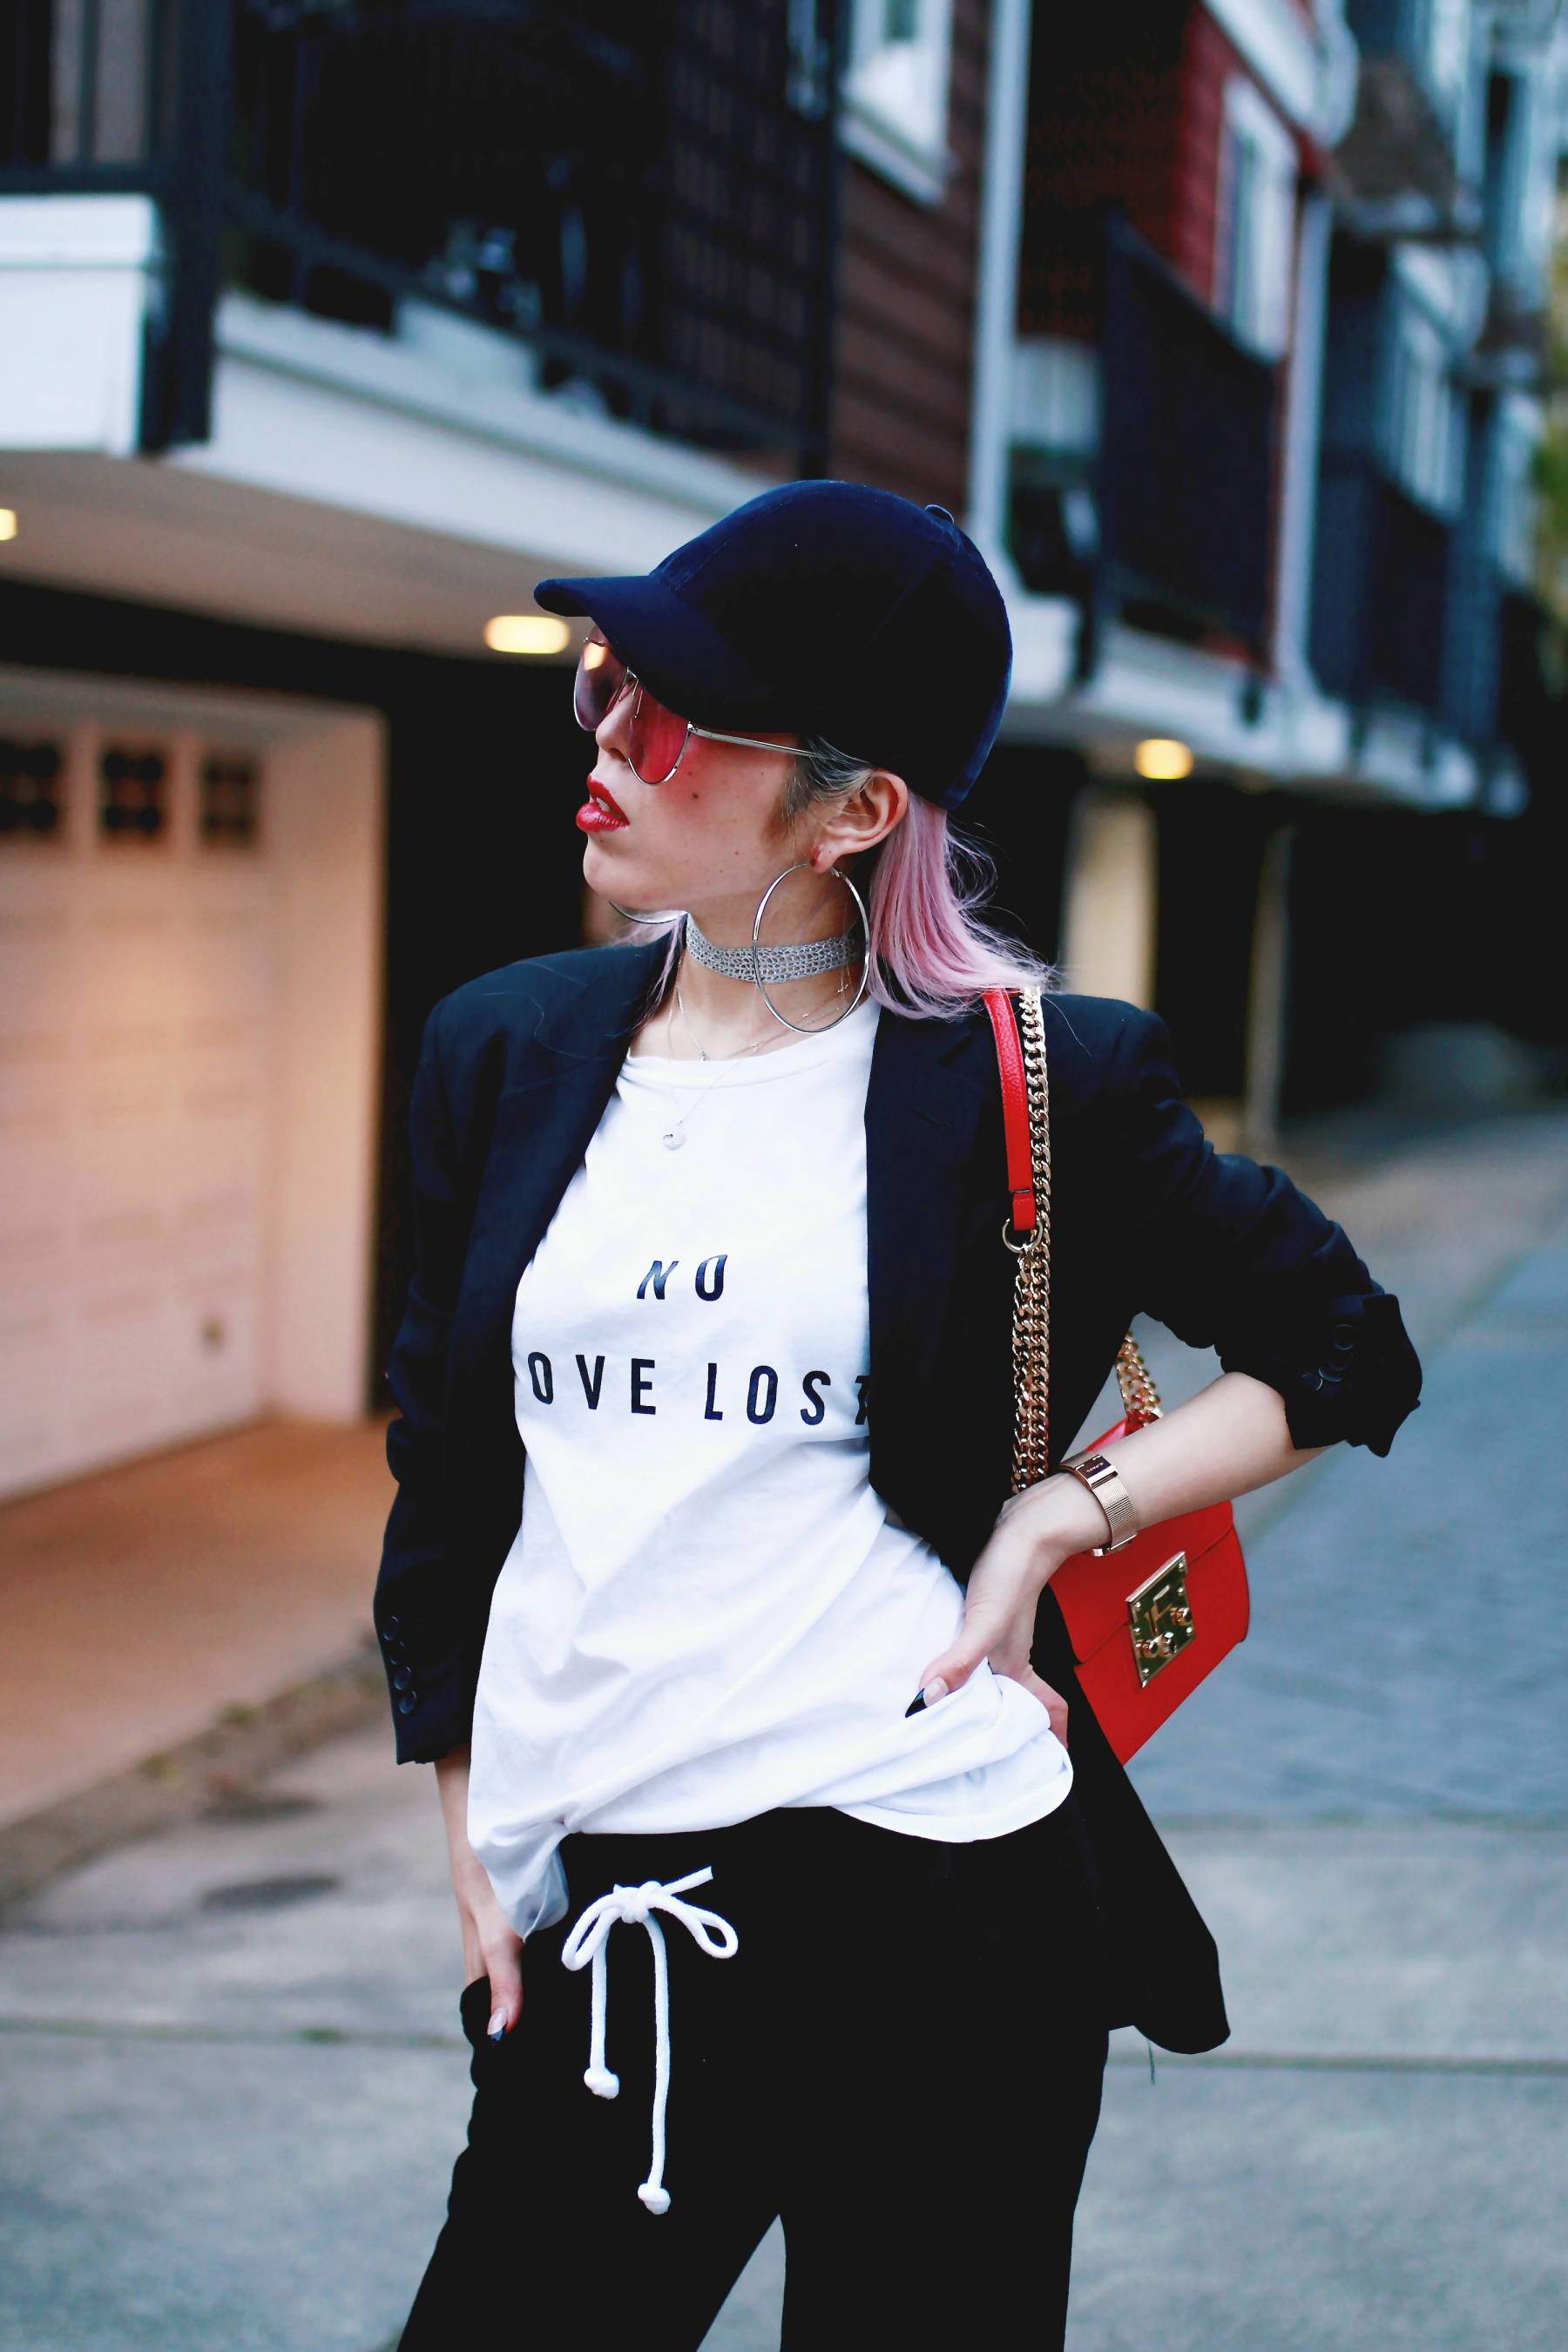 H&M Baseball Cap_Shop Sincerely Jules No LOVE LOST Tee_H&M Sweatpants_YSL Boyfriend Blazer_Zara Choker_Forever 21 Hoop Earrings_Mellow World Red Bag_Charlotte Russe Nude Sandals_L'Oreal Red Lipstick_Aikas Love Closet_Seattle Fashion Style Blogger_Pink Hair 9